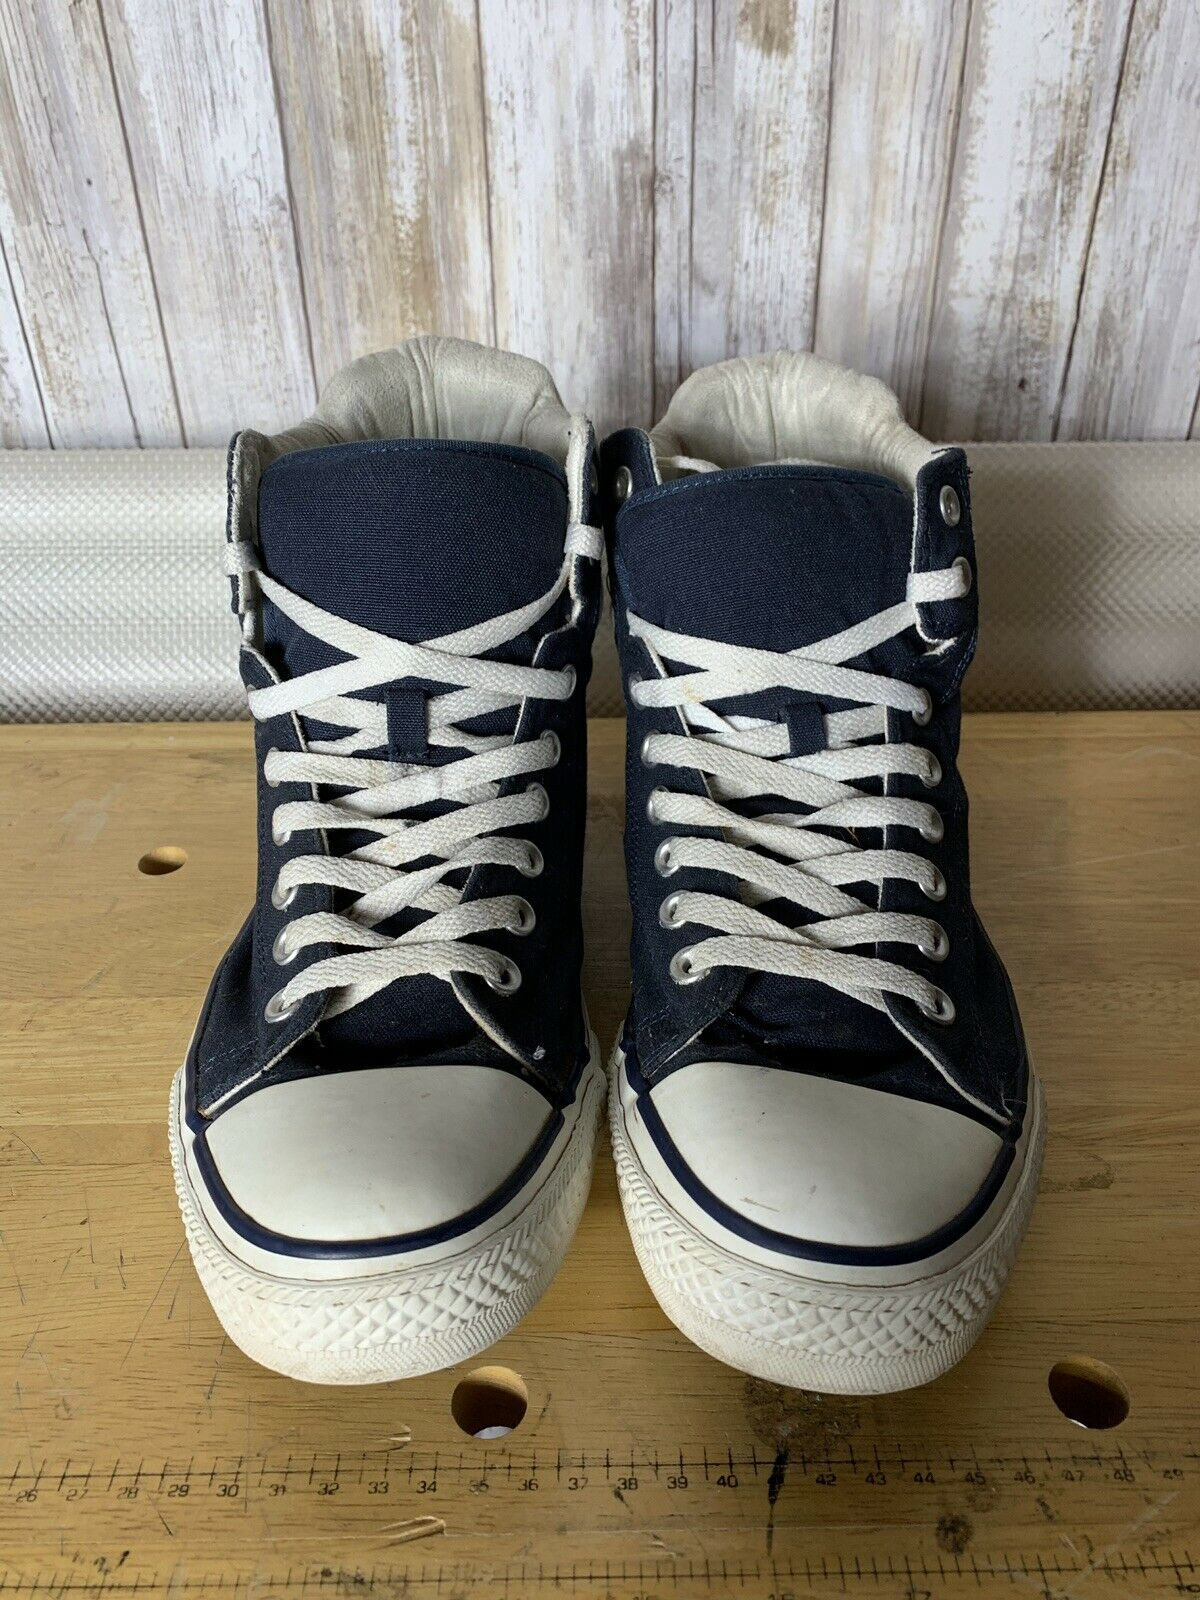 RARE Converse All Star Chuck Taylor High Top Sneakers shoes Sz 9.5 M 11.5W